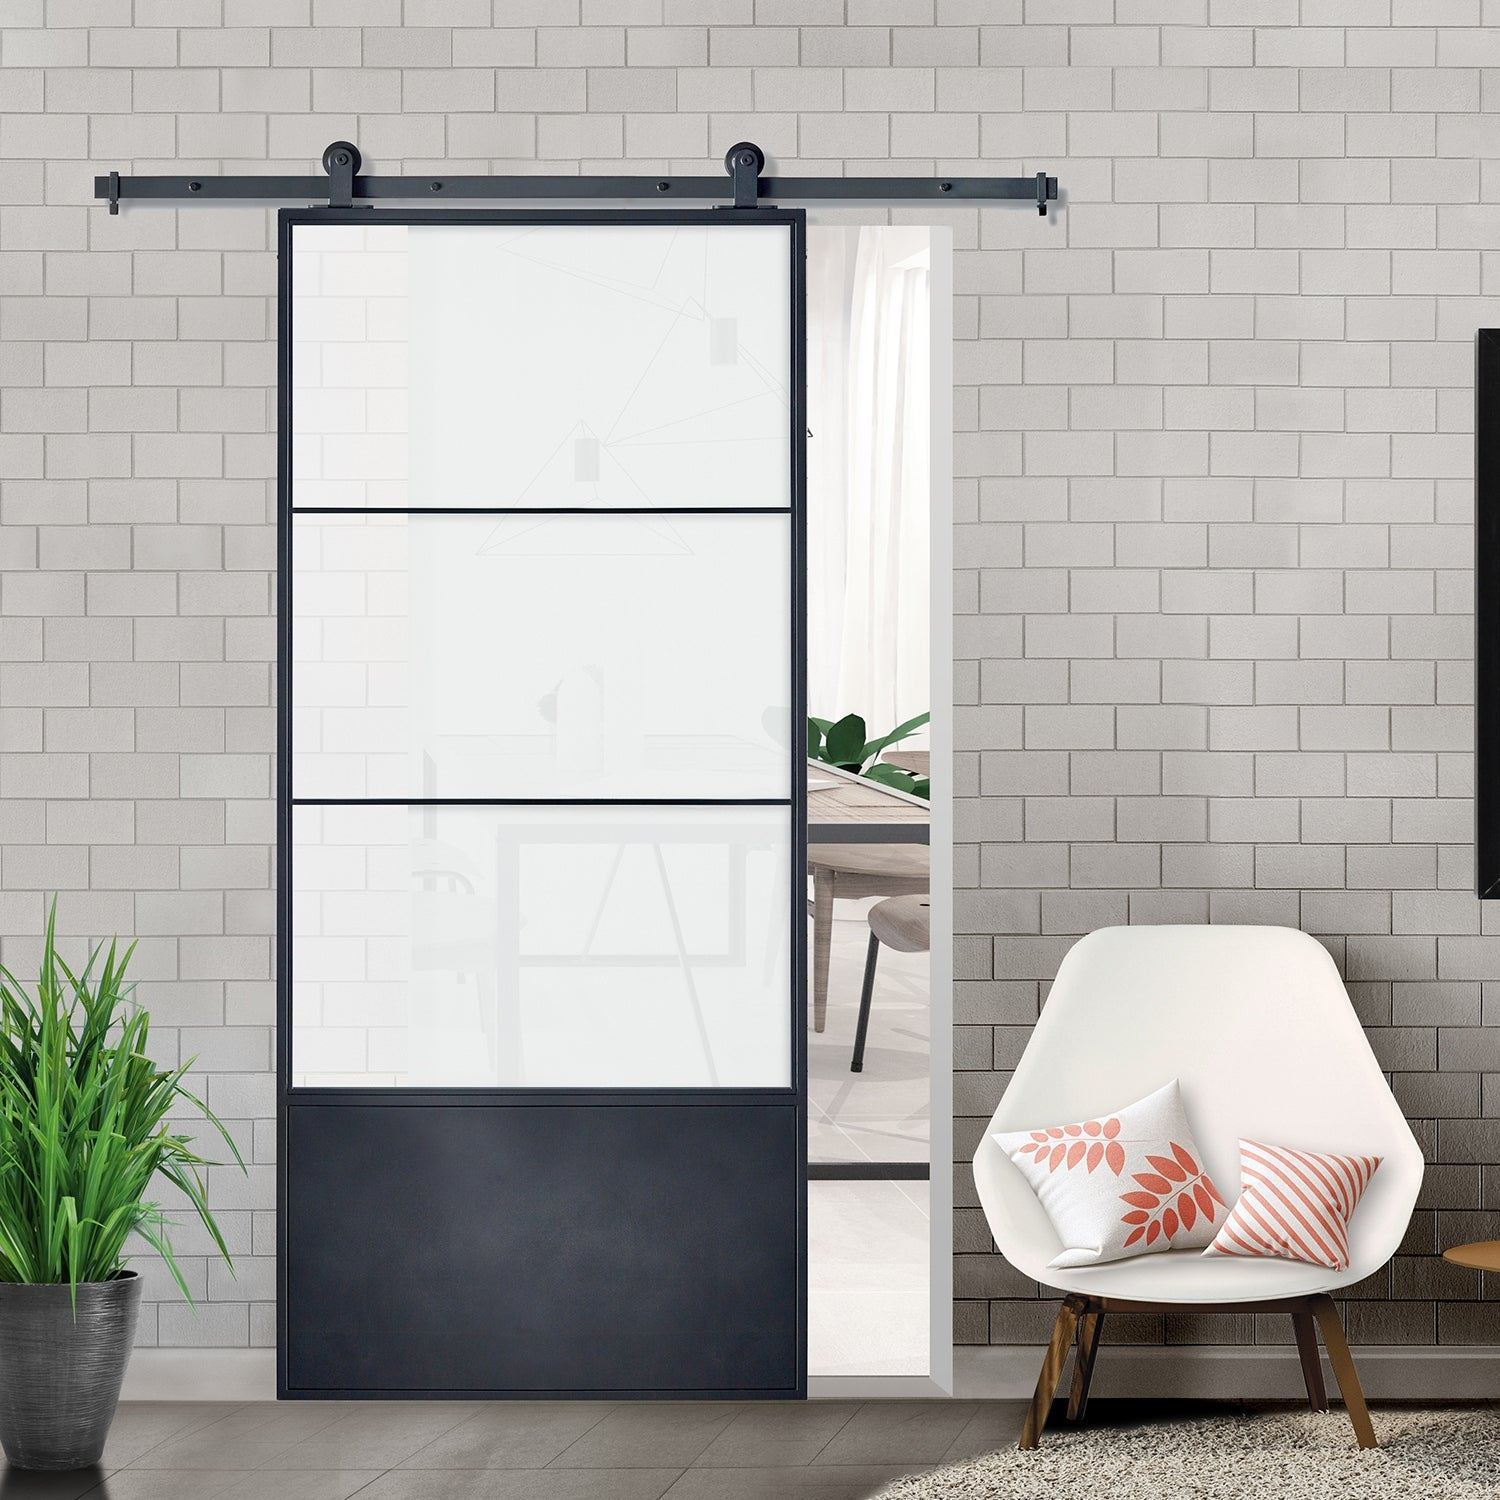 Concorde Black Frame Kit Frosted Glass 37 Inch Barn Door Overstock 28572532